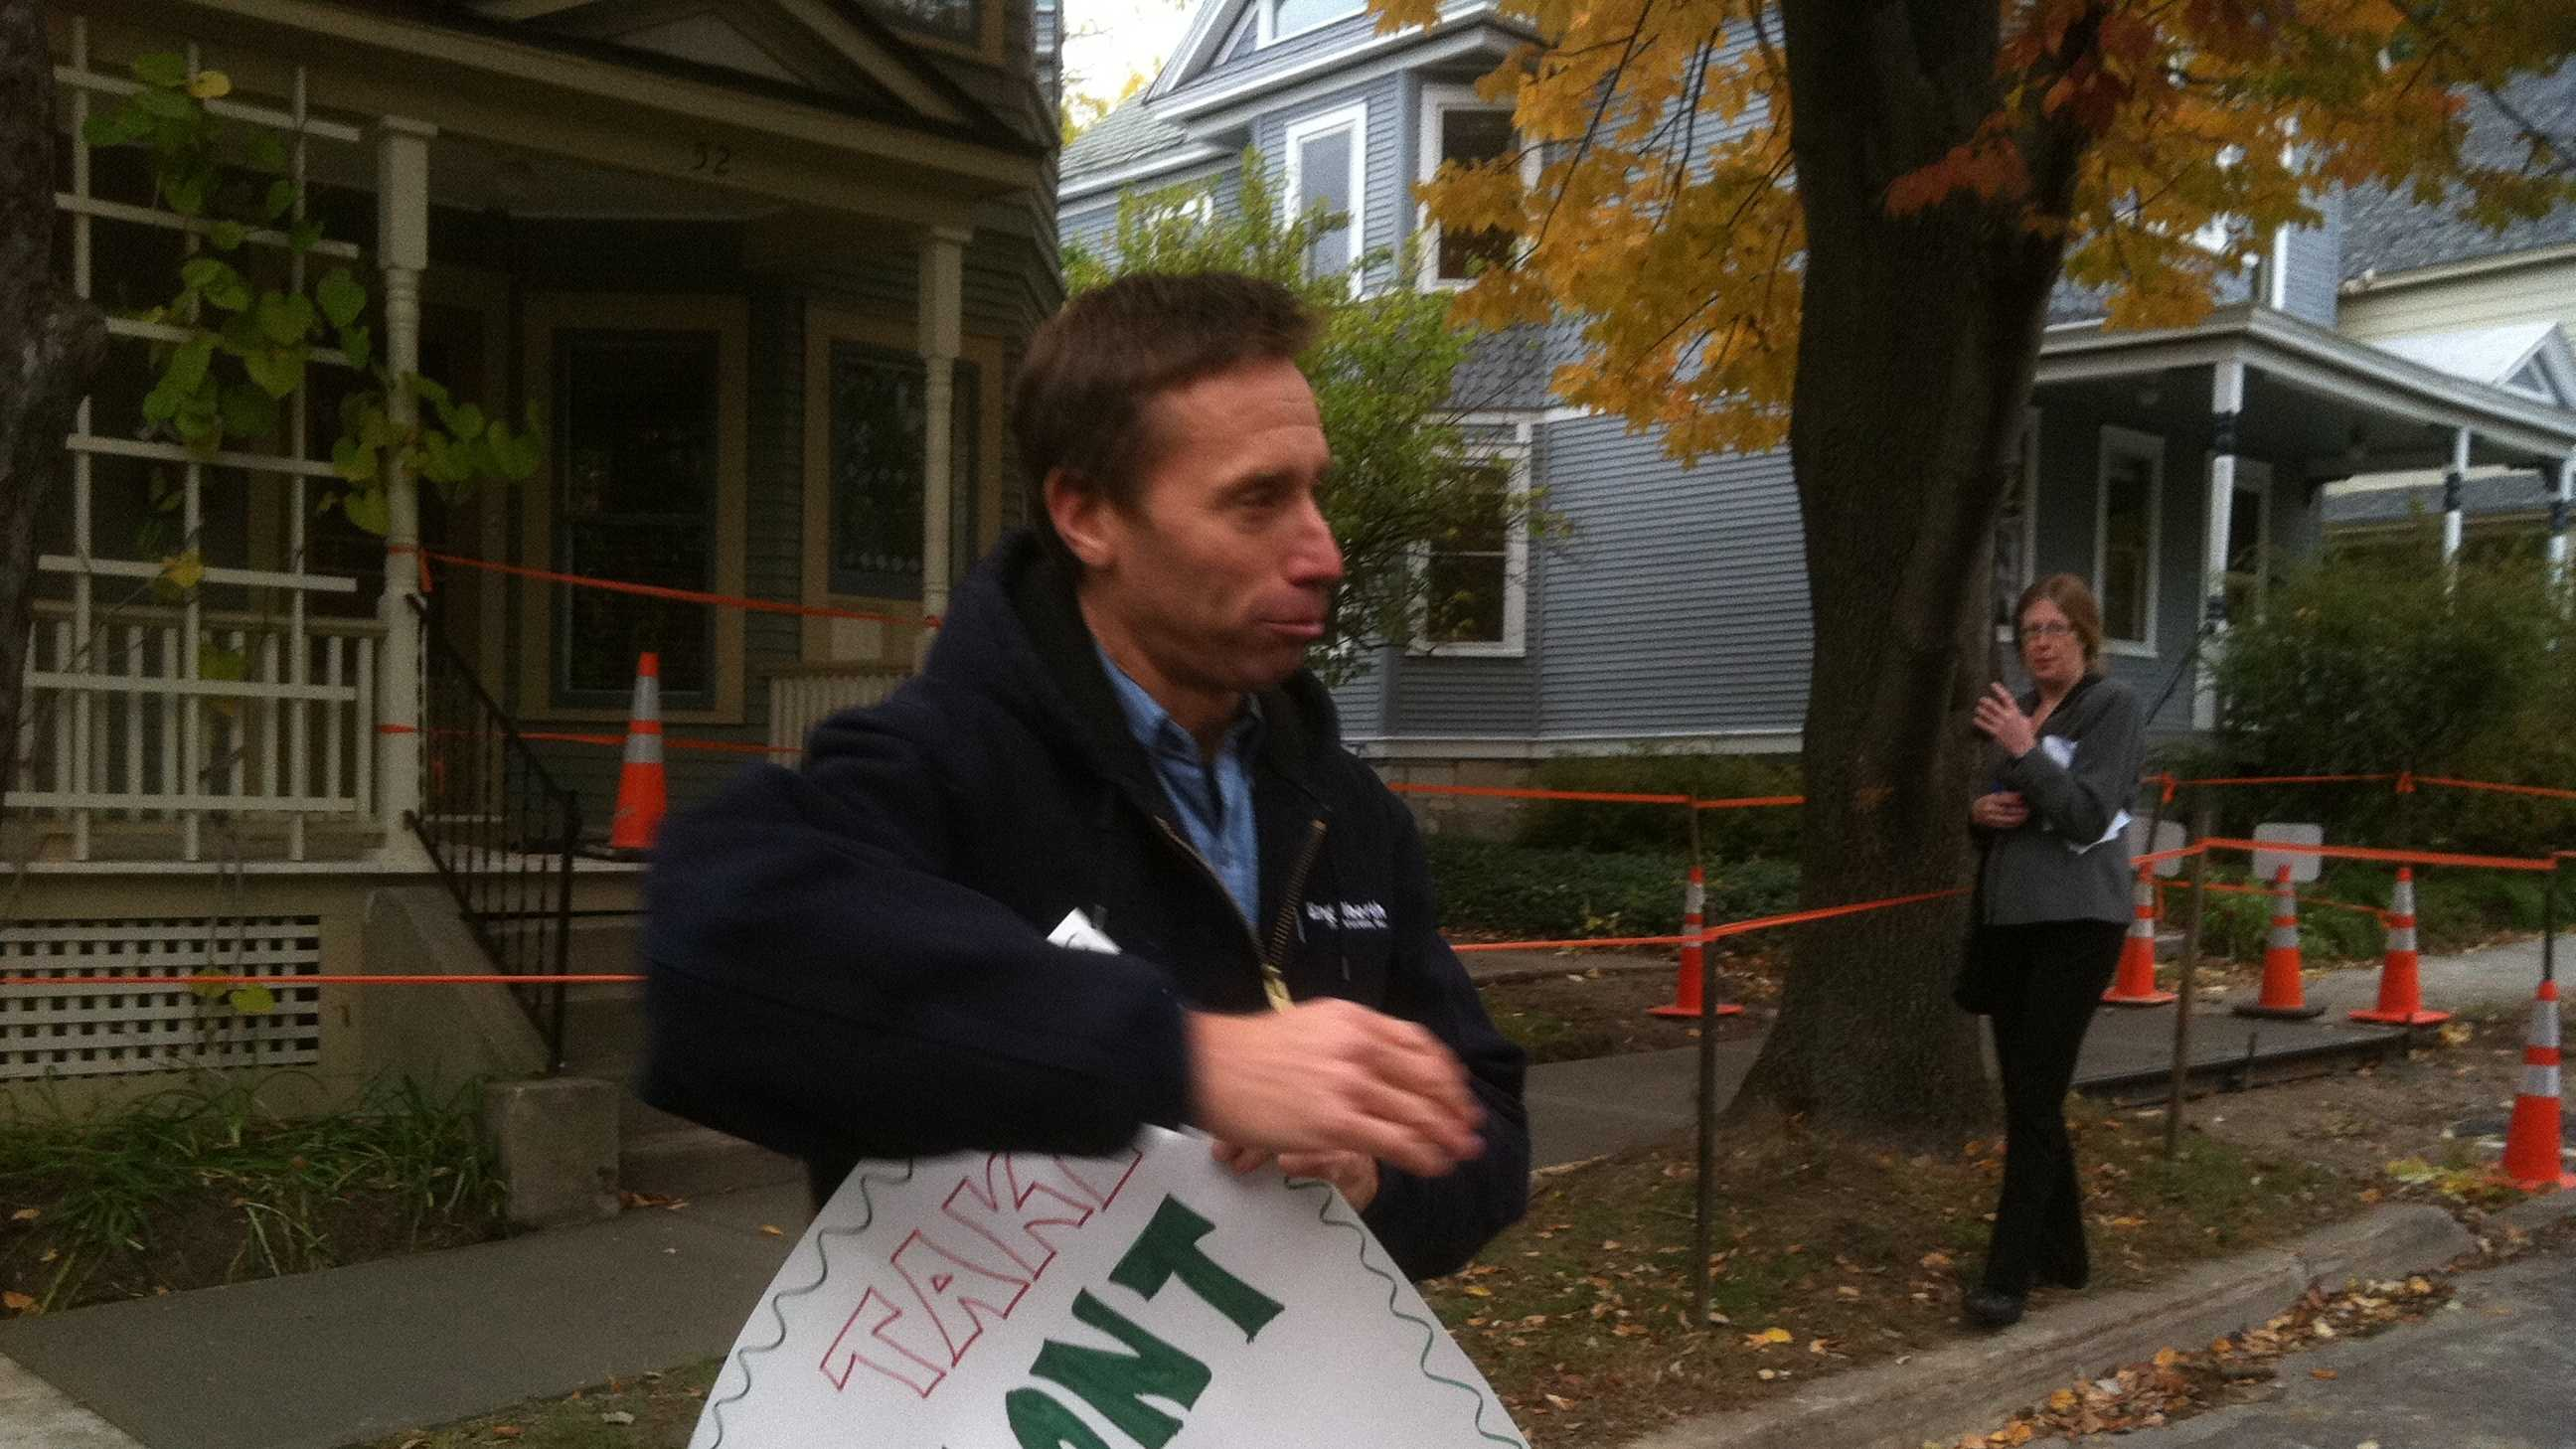 Health care reform activist Peter Sterling holds a sign in front of the home of 'Vermonters First' benefactor Lenore Broughton in Burlington.